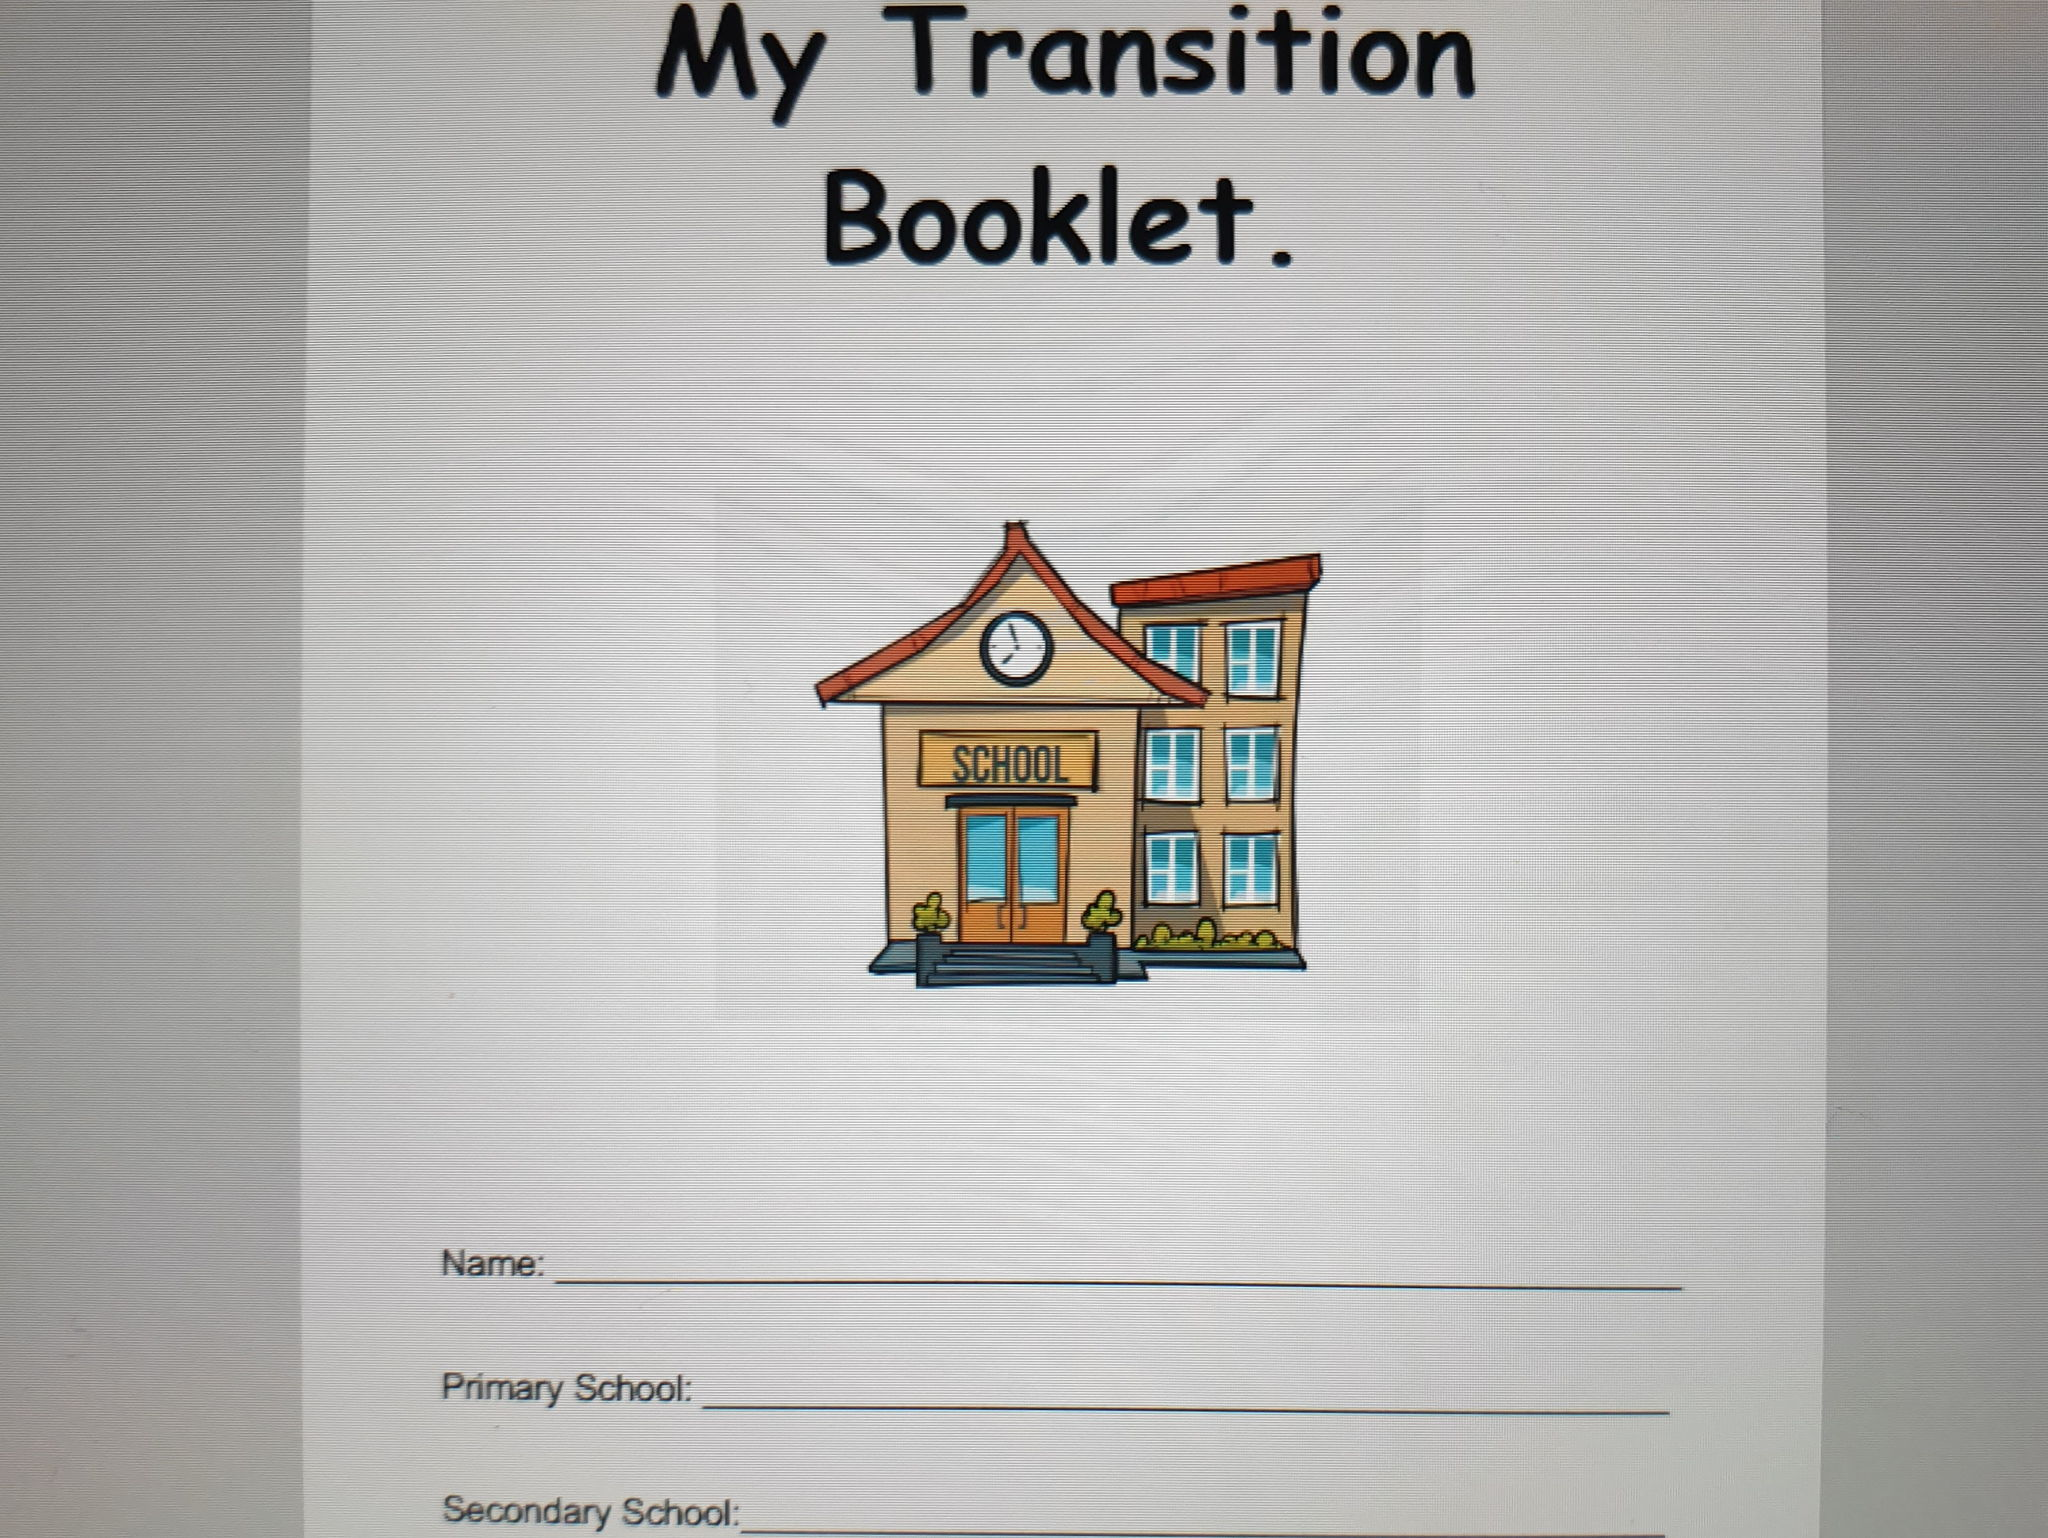 Transition booklet - for students